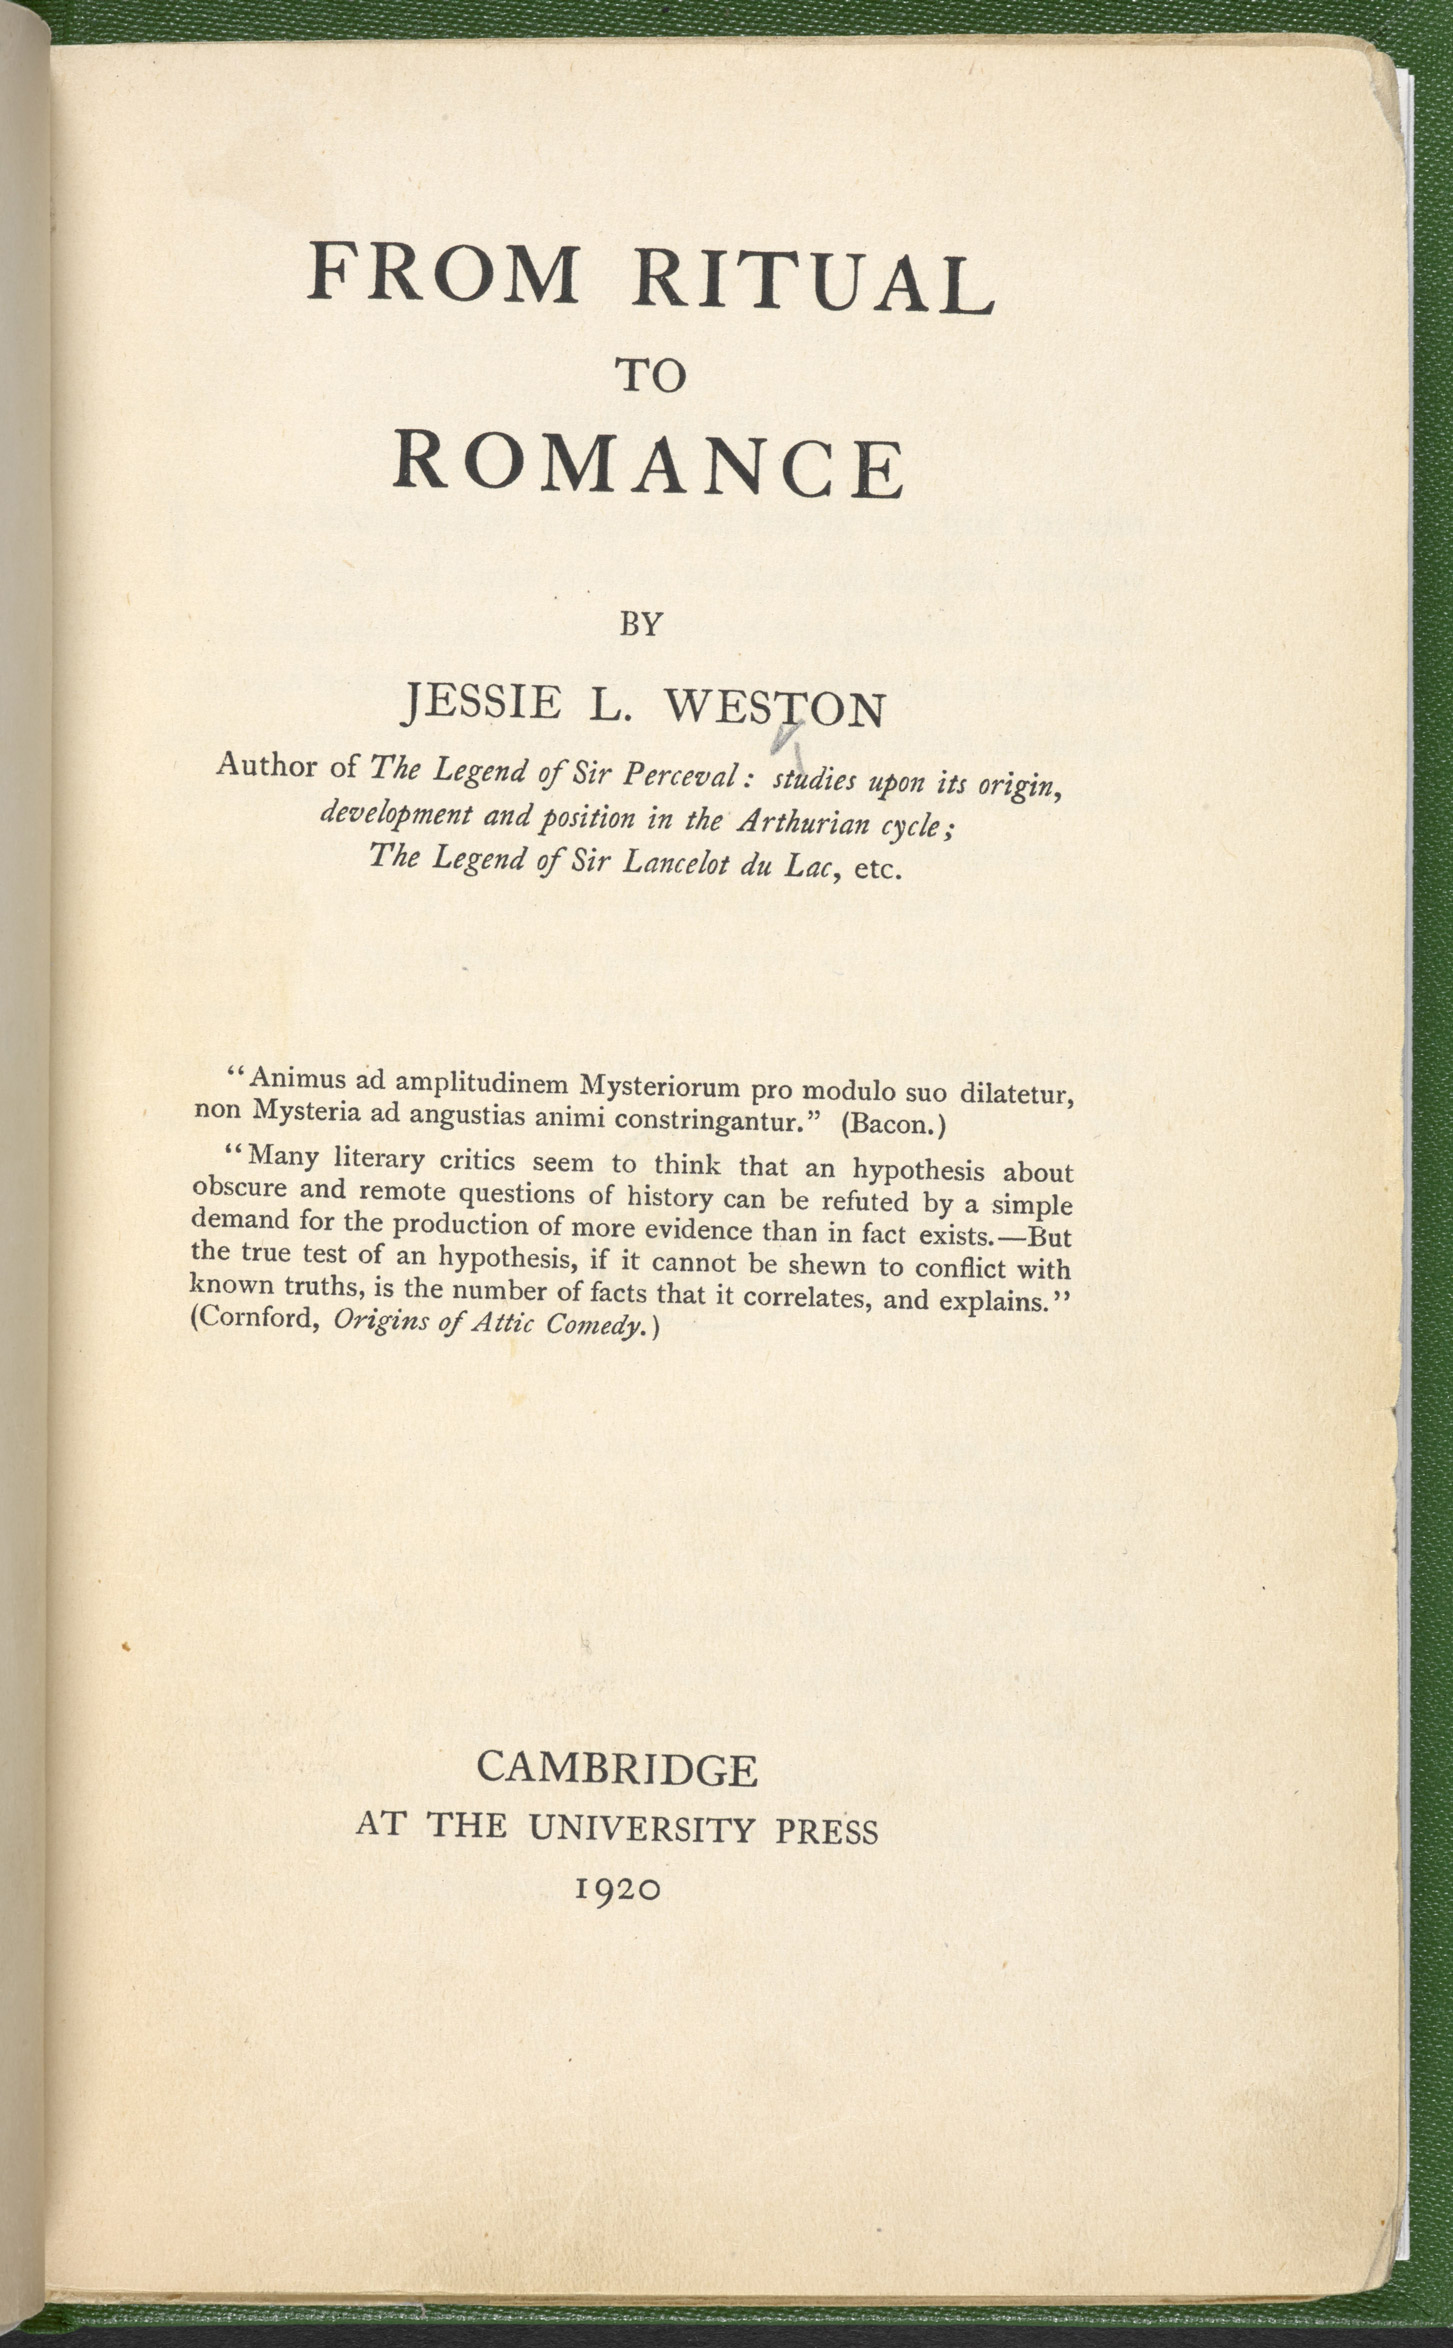 From Ritual to Romance, a source referenced in The Waste Land